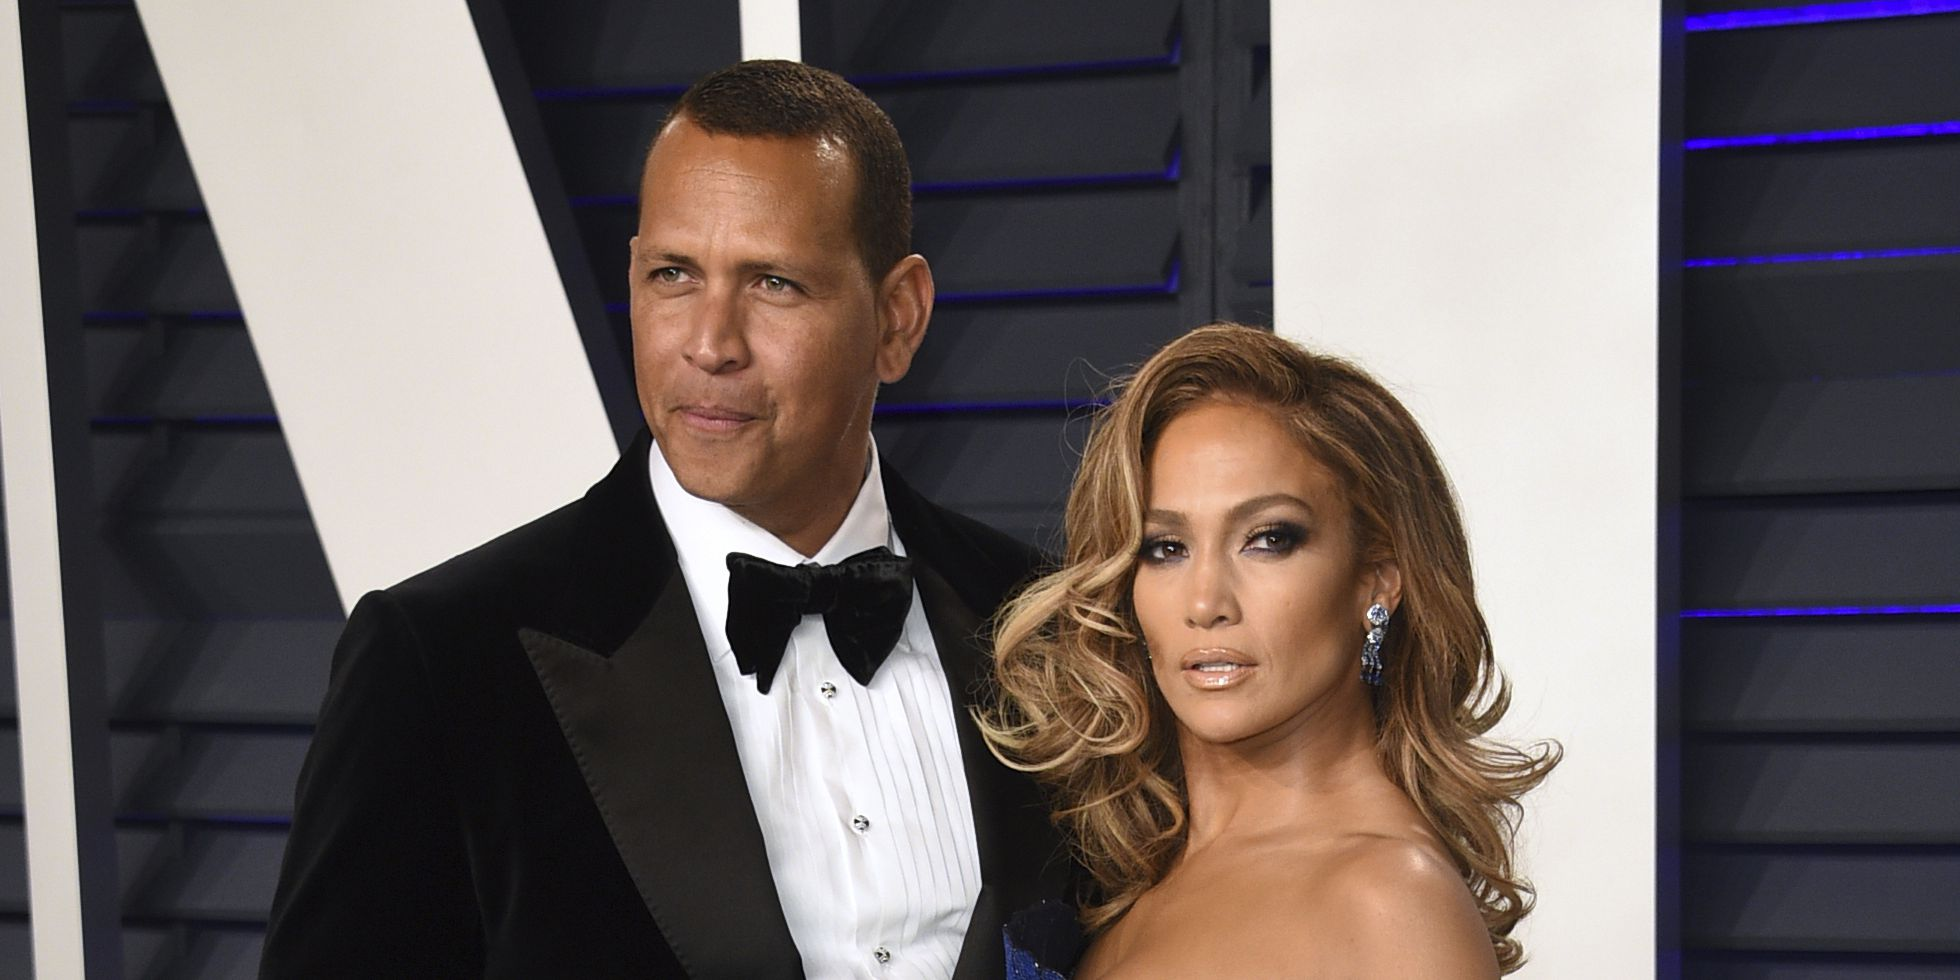 J-Rod are done: Jennifer Lopez, Alex Rodriguez have split